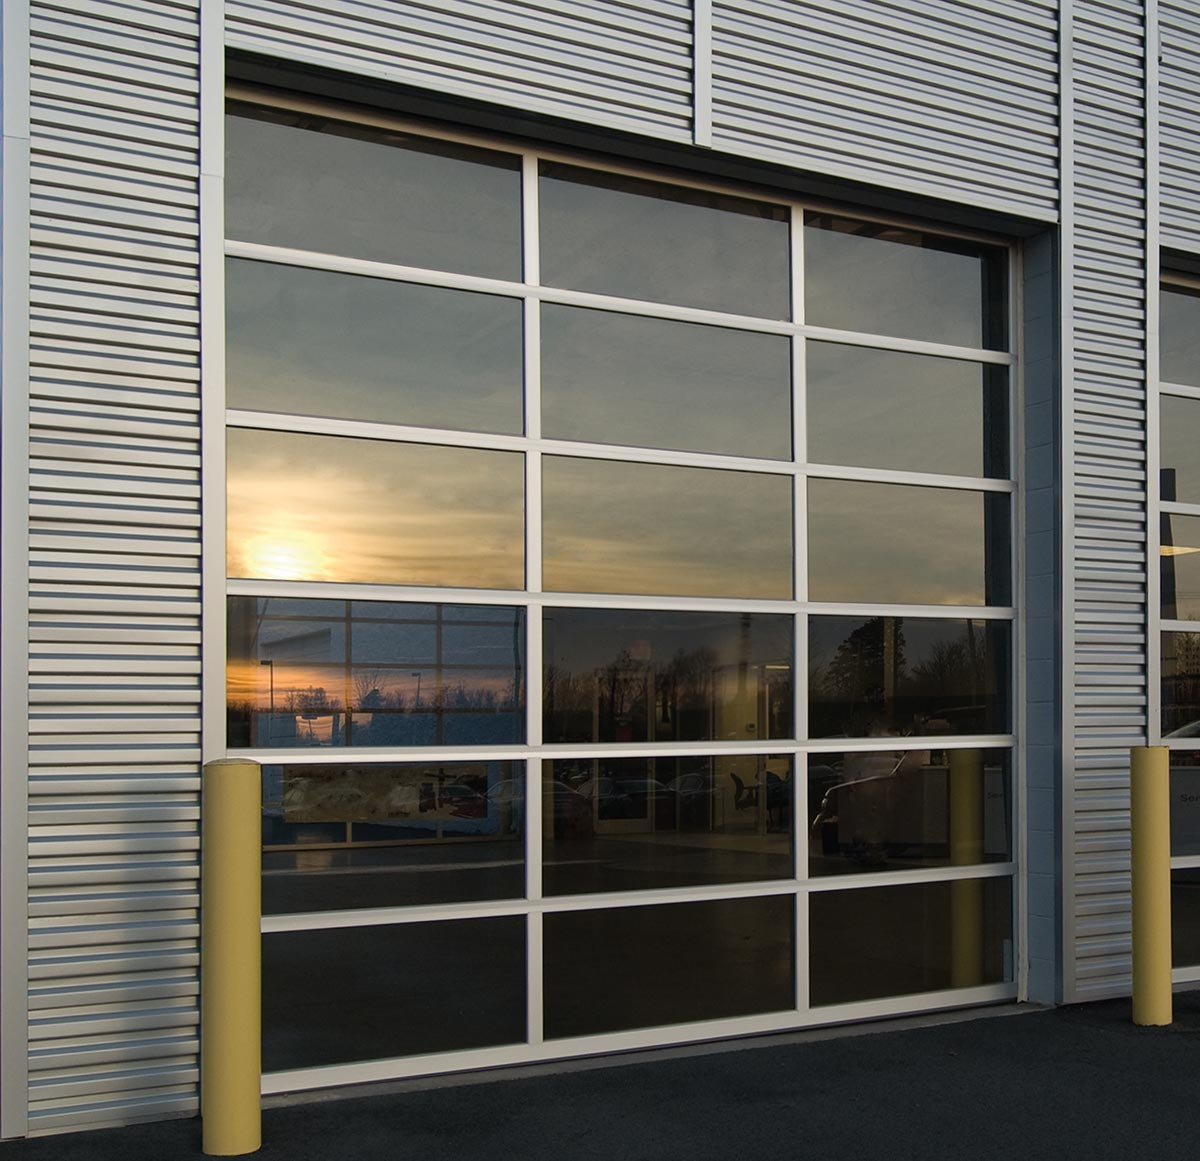 repair roll nor rollup cloplaydoor ups garage up inc cal overhead doors door commercial